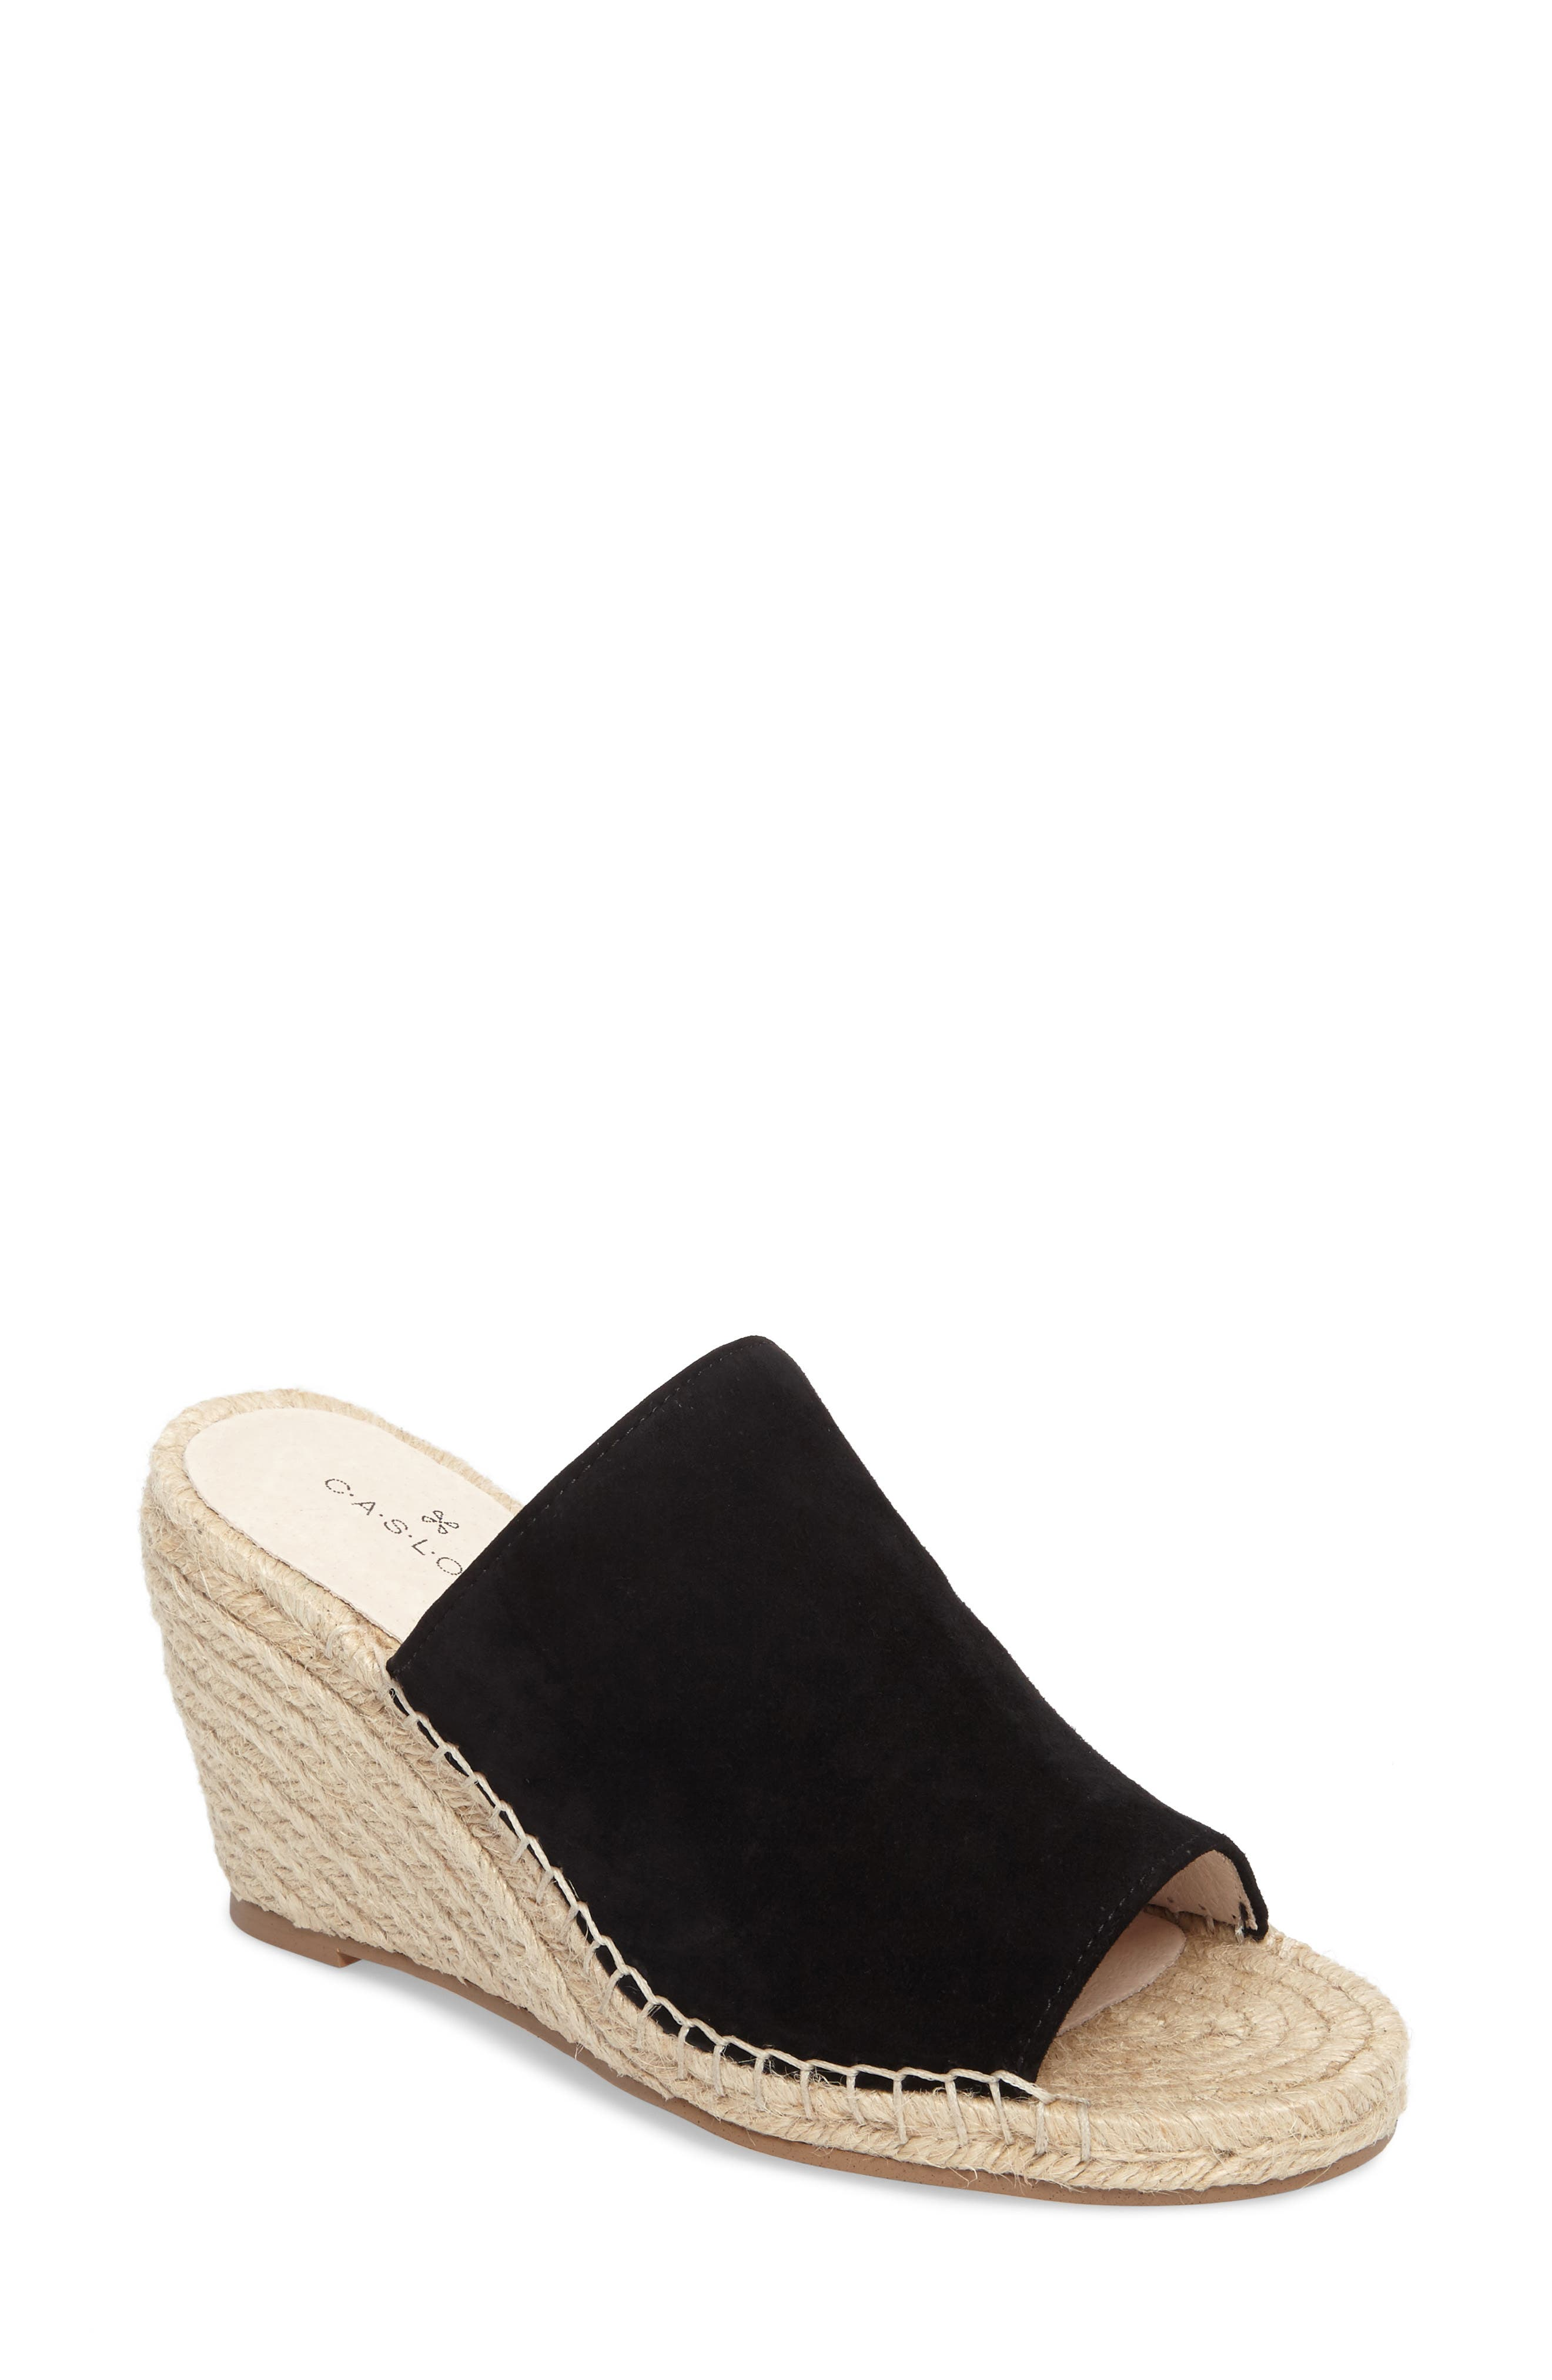 CASLON<SUP>®</SUP> Sally Wedge Sandal, Main, color, BLACK SUEDE